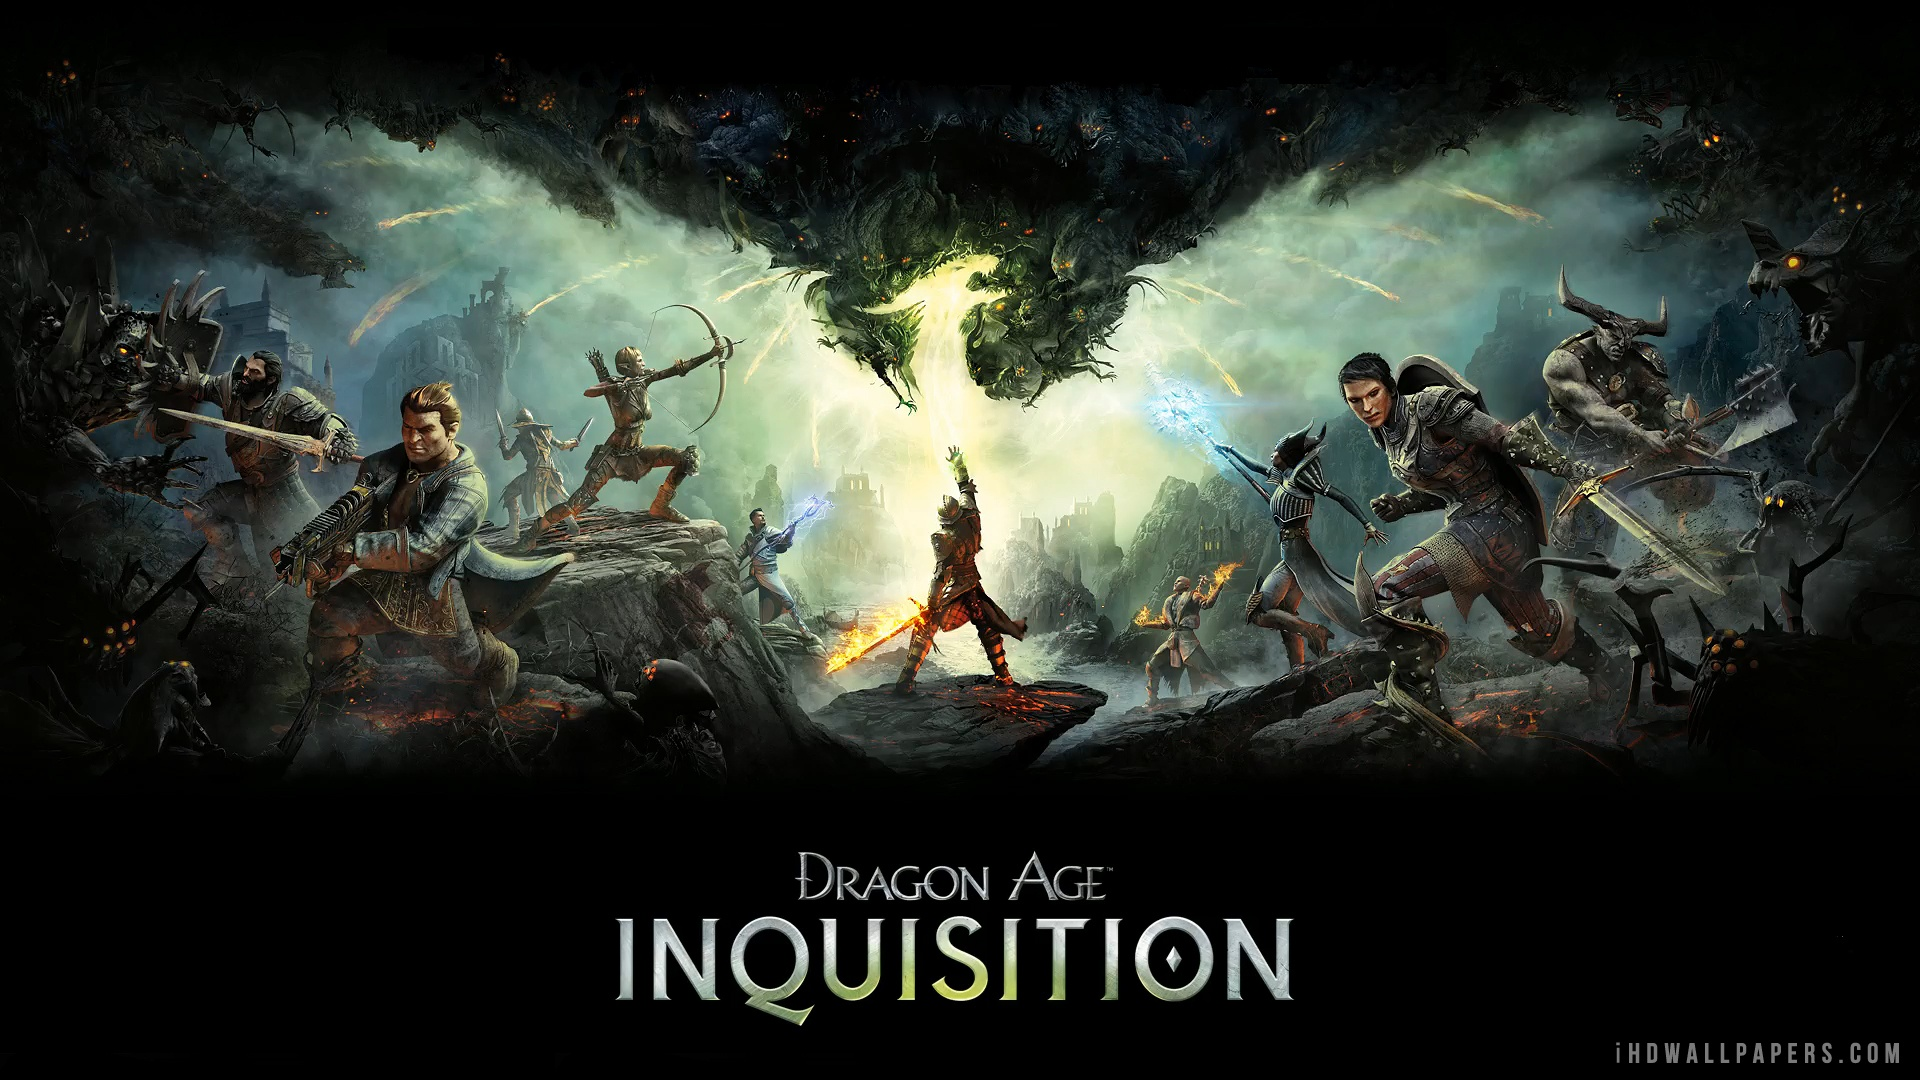 Dragon Age Inquisition HD Wallpaper   iHD Wallpapers 1920x1080